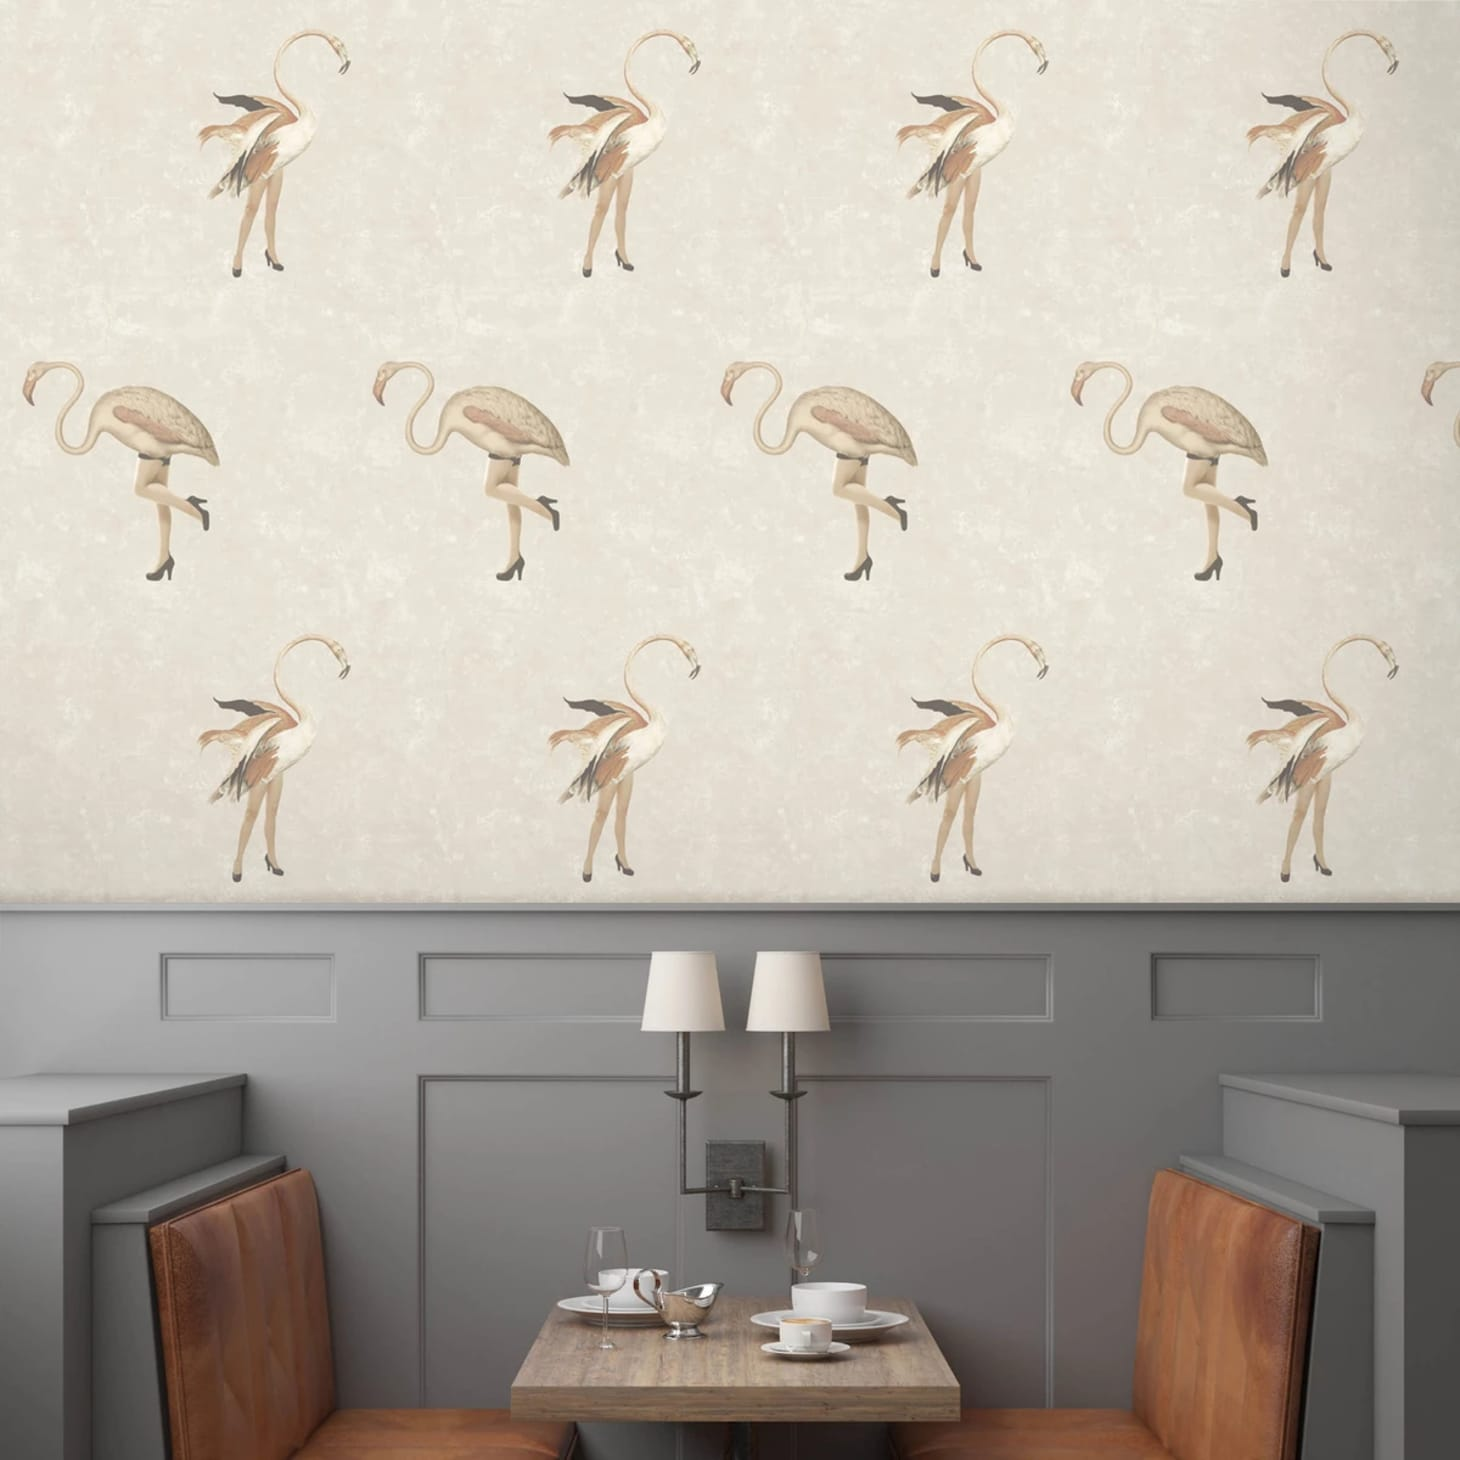 9 Wallpaper Ideas You Actually Won\'t Get Sick of | Apartment ...